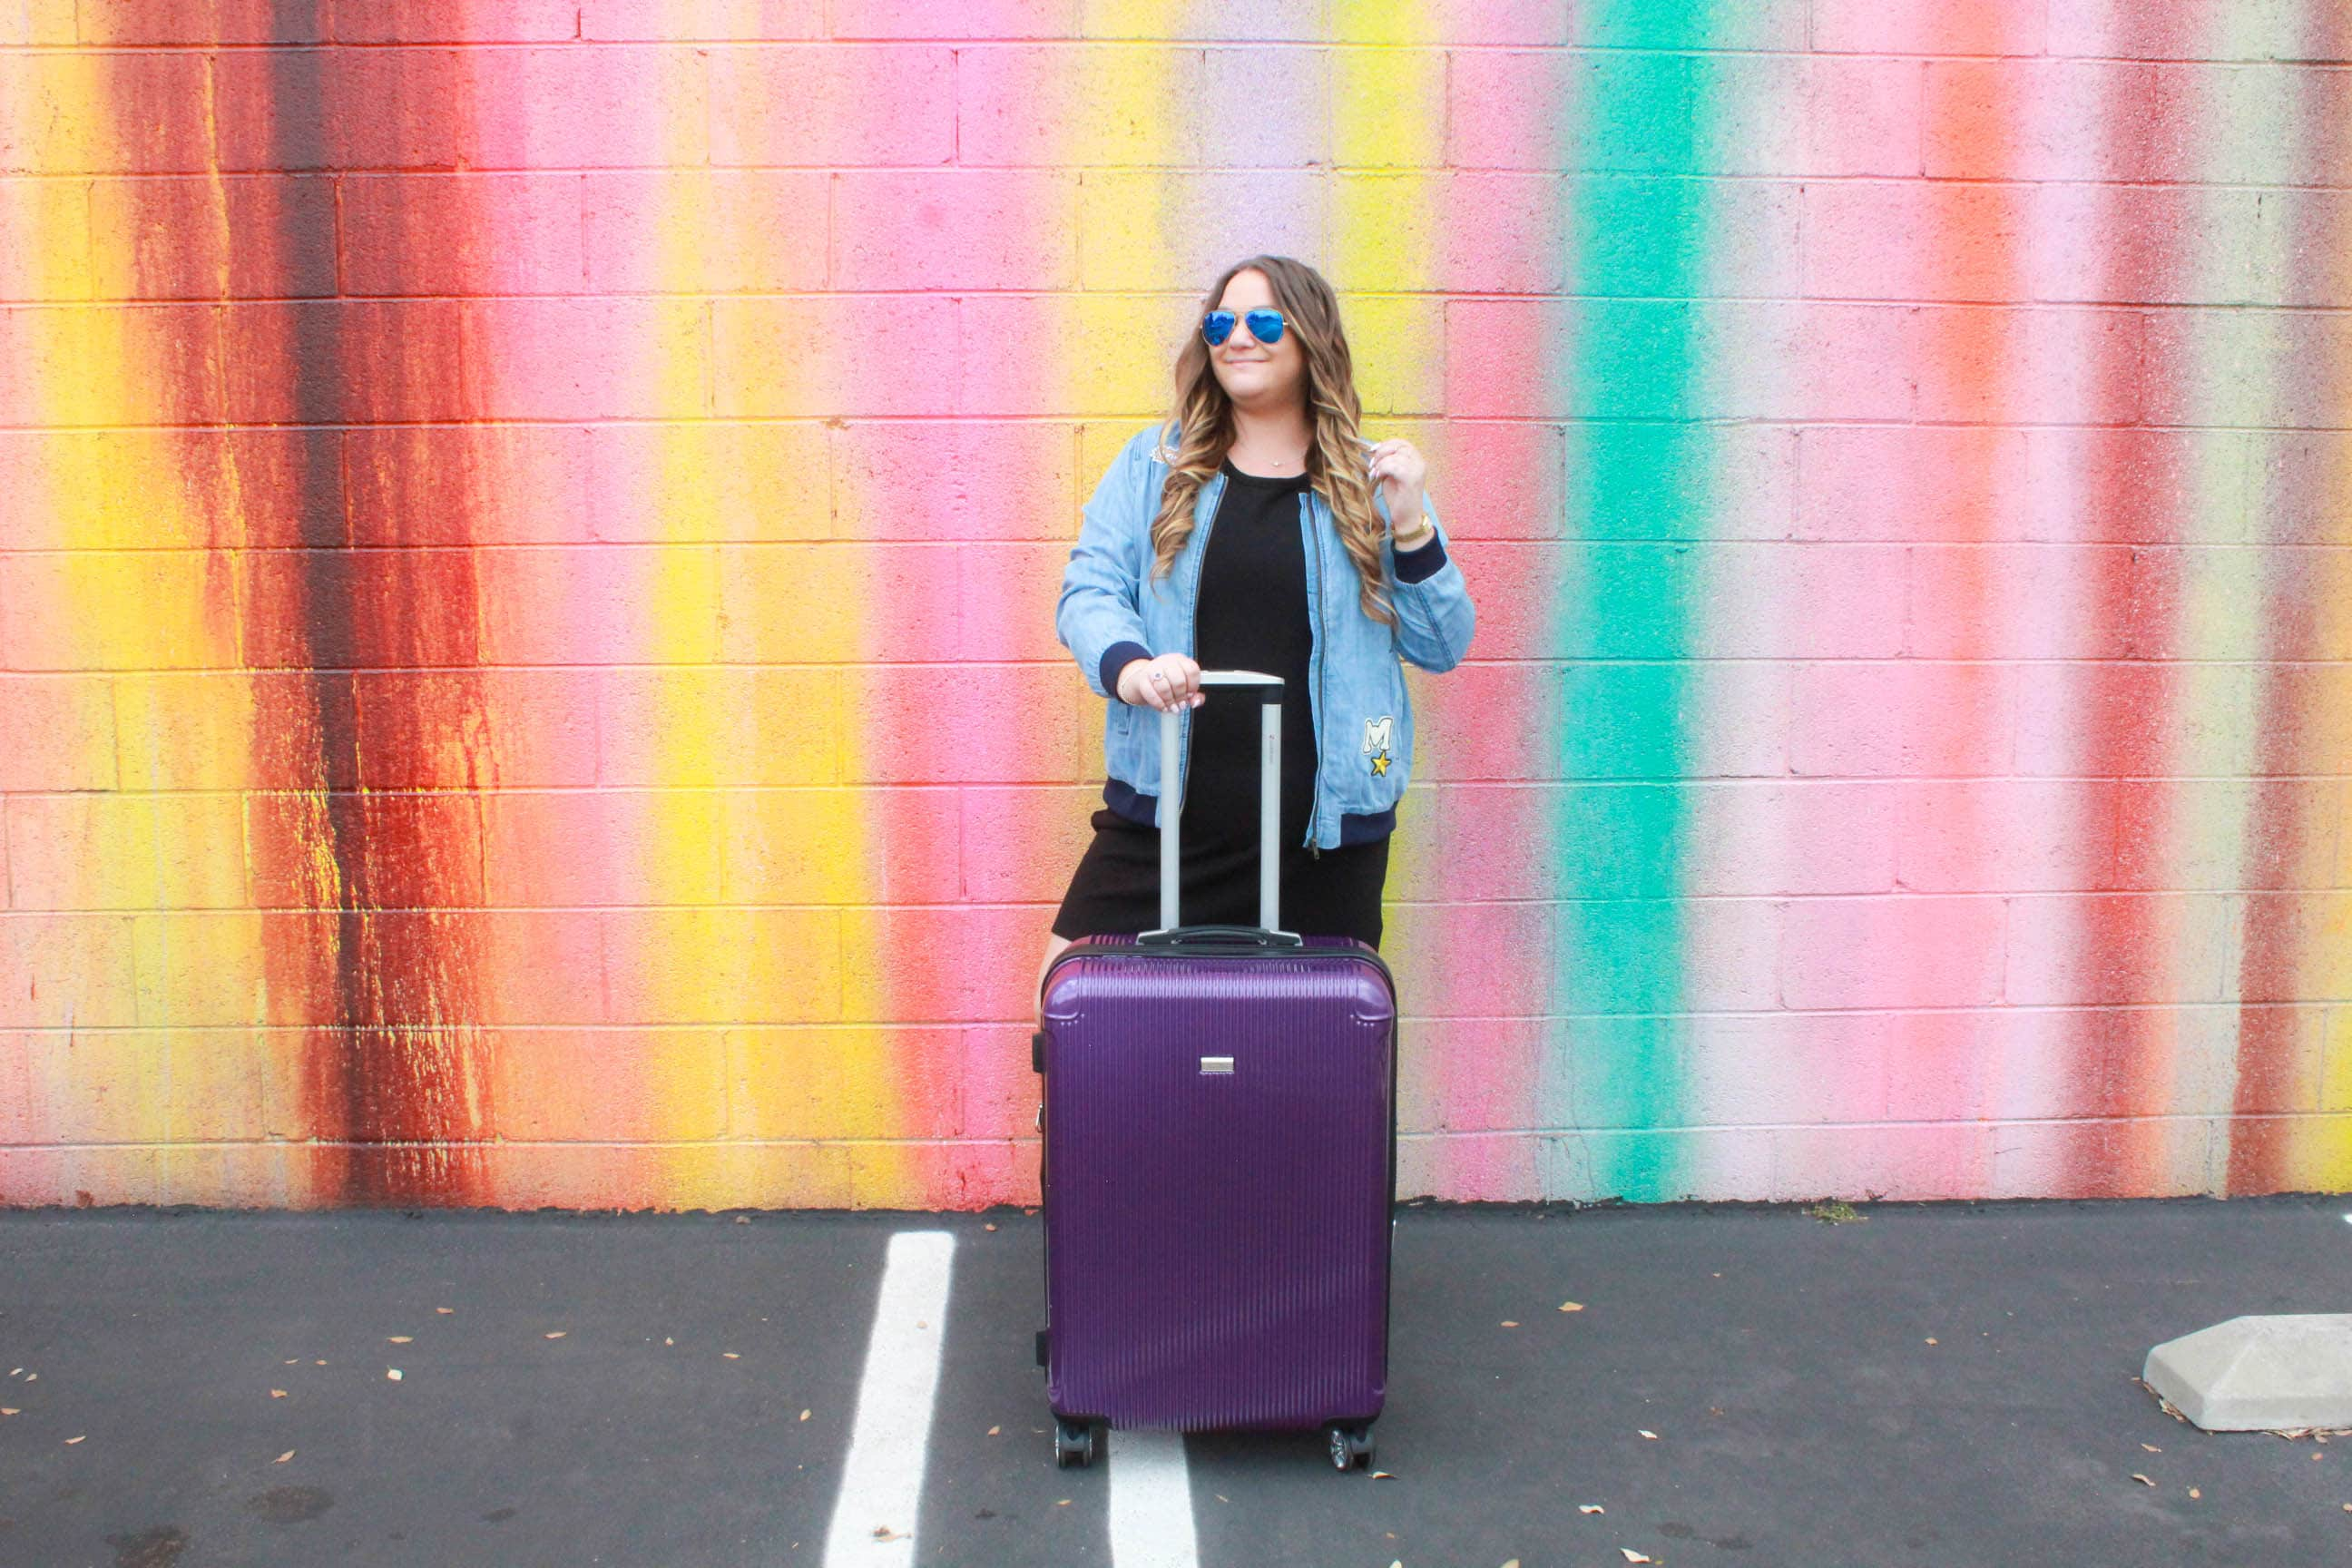 missyonmadison, missyonmadison instagram, fashion blog, fashion blogger, style blog, style blogger, melissa tierney, missyonmadiosn instagram, missyonmadison blog, travel blog, travel blogger, luggage reviews, gabbiano luggae, gabbiano luggage review, pasadena colored wall, la wall crawl, la colorful walls, colorful walls in la, blogger, la blogger, travel goals, packing tips, travel style, what to wear when traveling, purple luggage, gabbiano luggage, bloglovin, travel guide, travel buys,